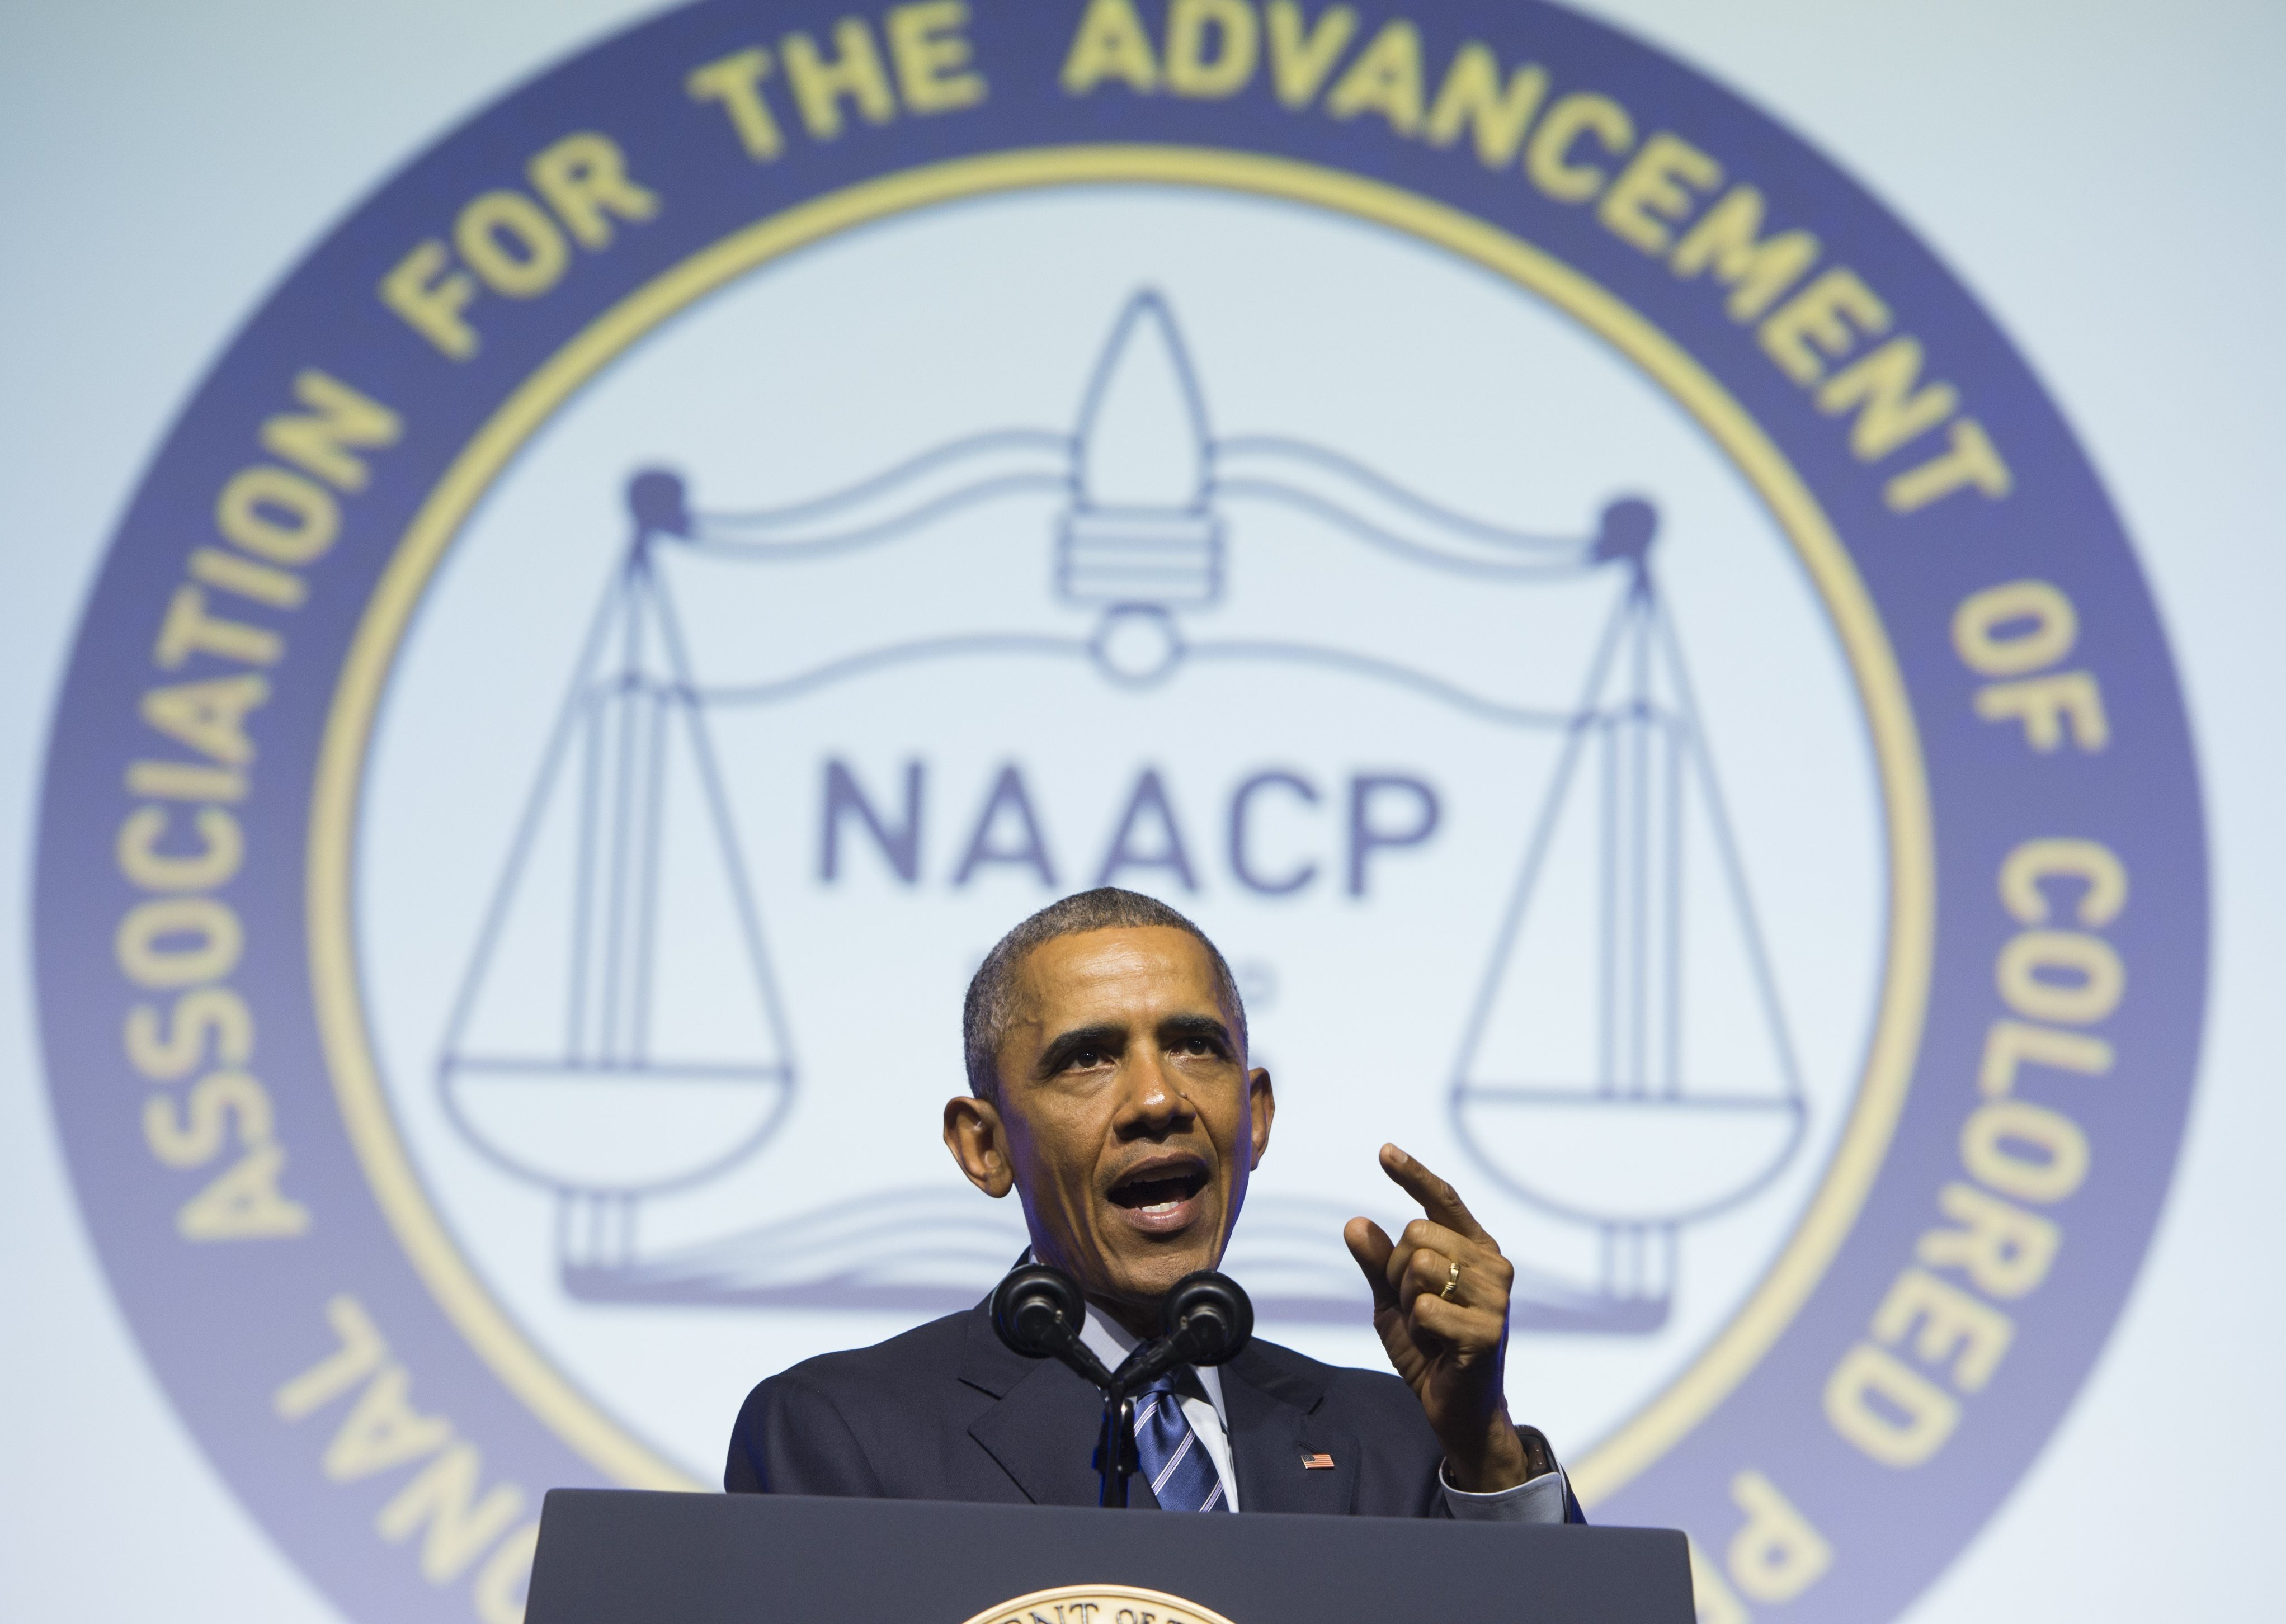 President Barack Obama speaks during the NAACP's 106th National Convention in Philadelphia on July 14, 2015.